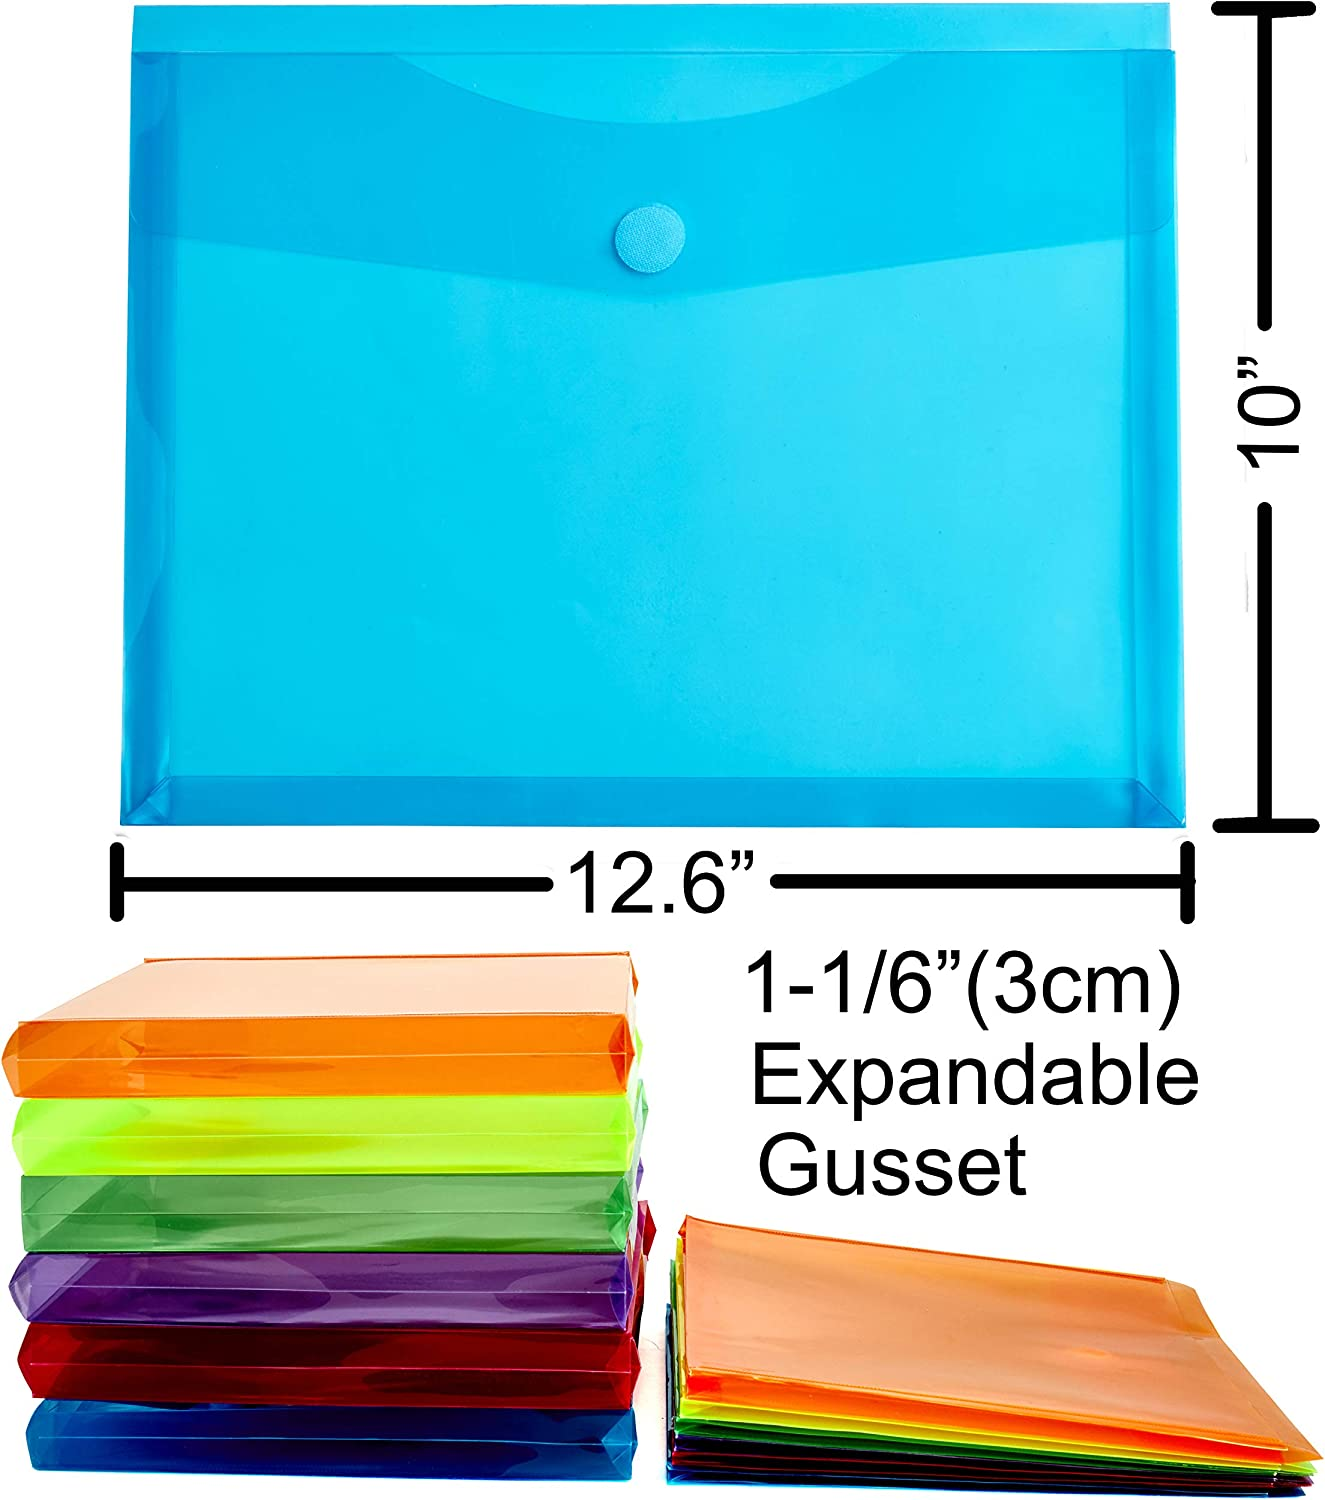 Letter A4 Size Reusable Poly File Document Folders Envelopes with Expandable Gusset for School Home Office FANWU 12 Pack Assorted Color Plastic Envelopes with Hook /& Loop Closure 1-1//6 Expansion